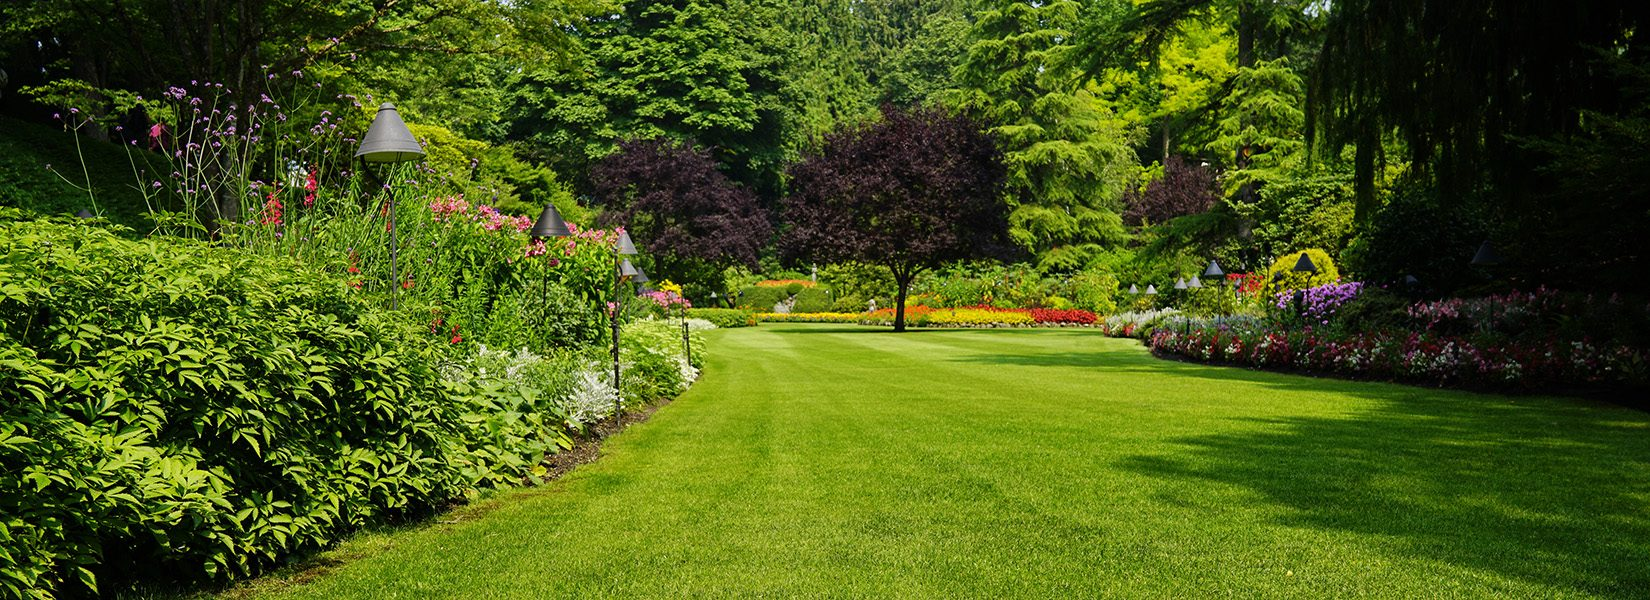 Beautiful trees and green grass  in  garden